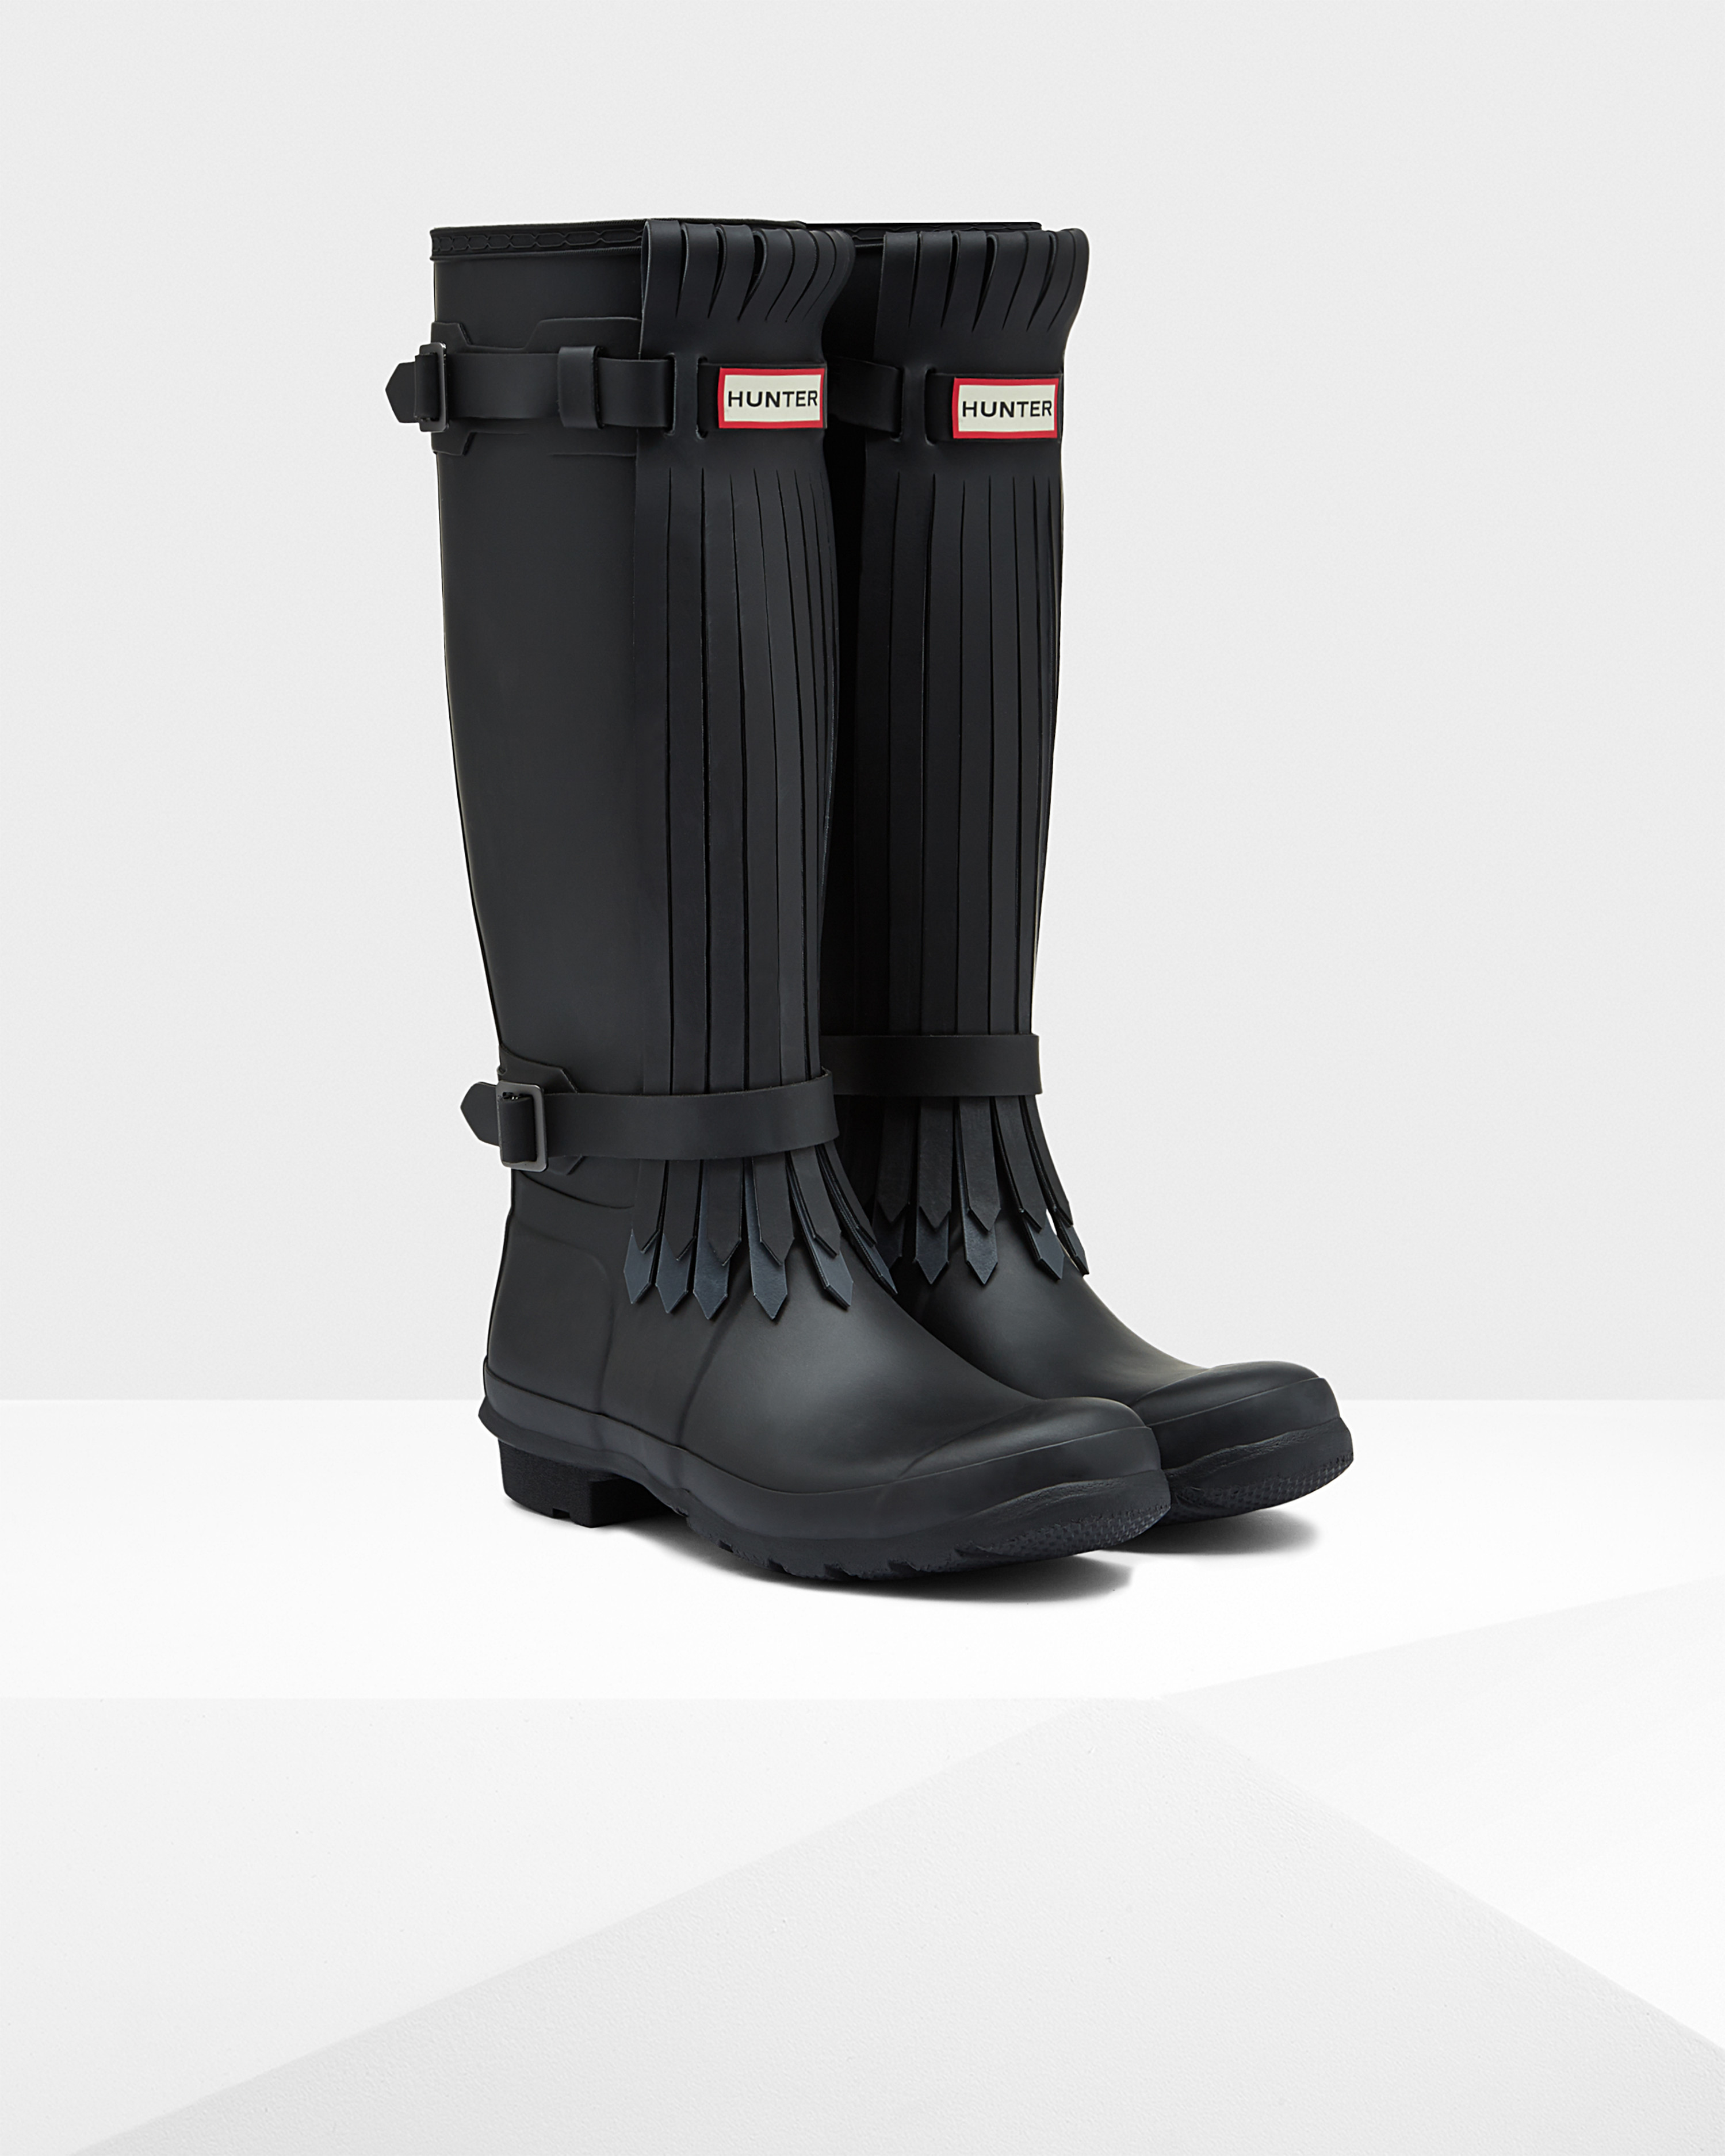 Wonderful Item Details A Watertight Rubber Rain Boot The Hunter Boots Are More